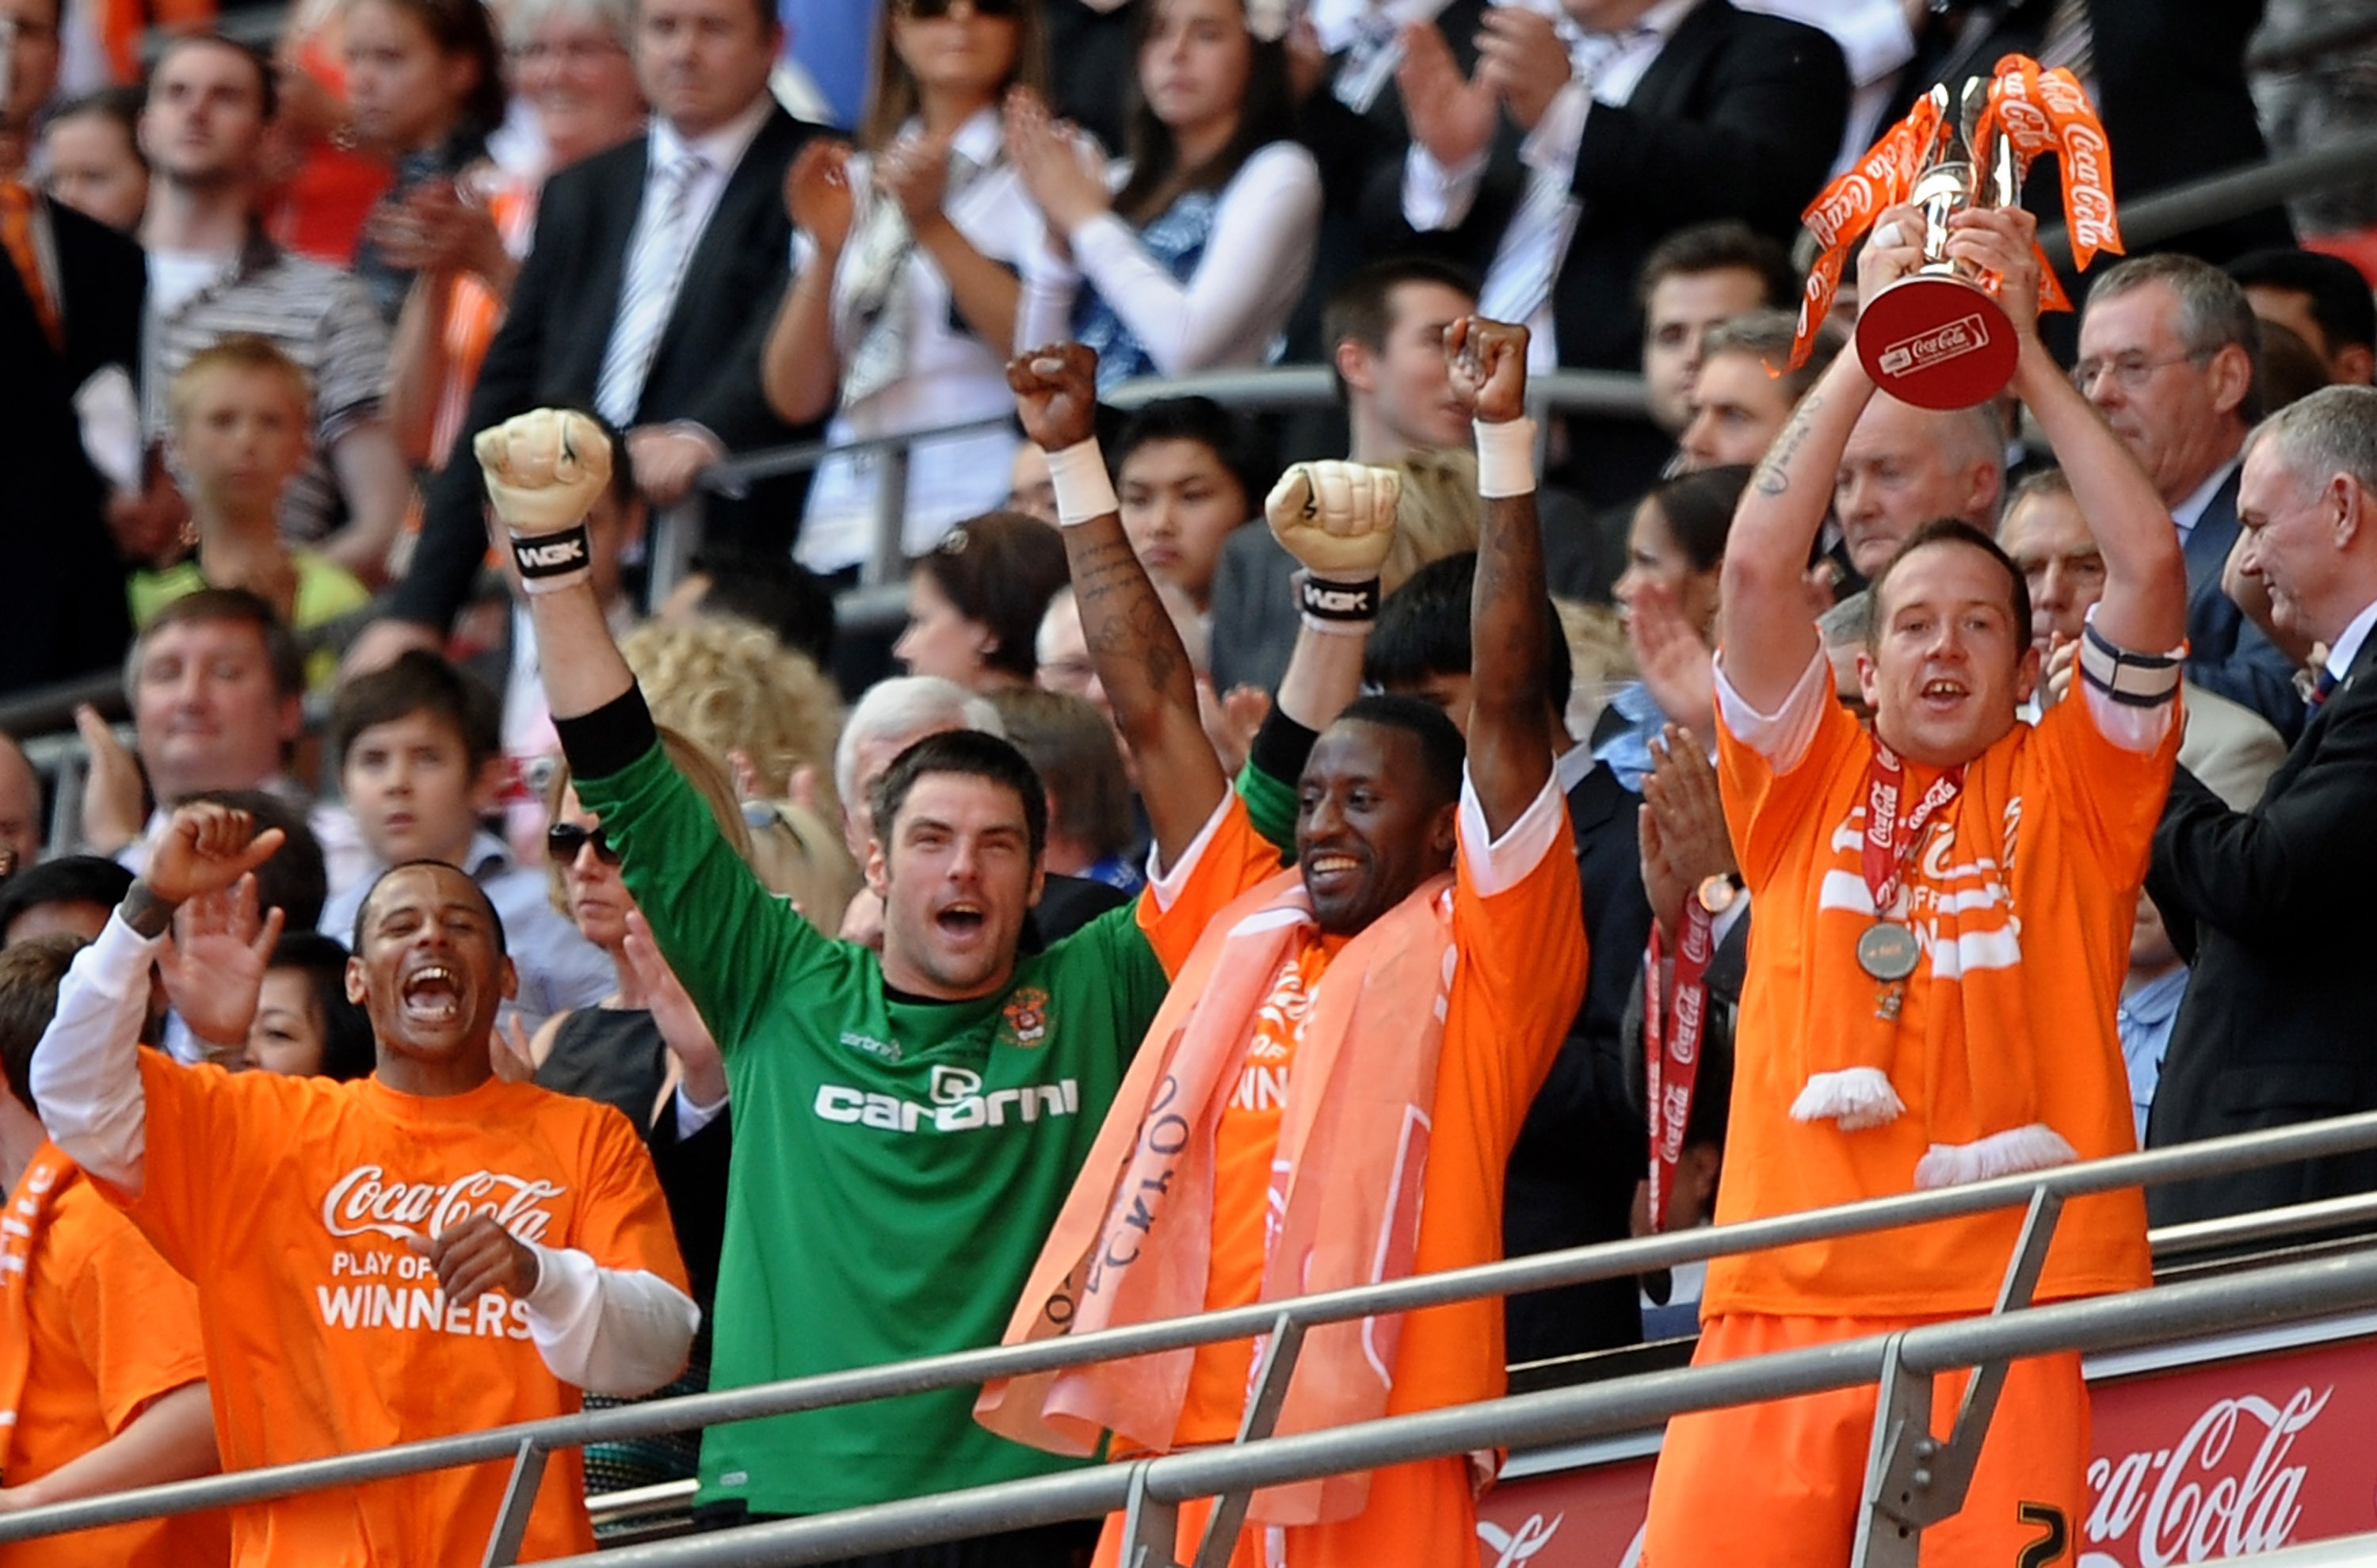 LONDON, ENGLAND - MAY 22:  Charlie Adam and the Blackpool team celebrate promotion during the Coca-Cola Championship Playoff Final between Blackpool and Cardiff City at Wembley Stadium on May 22, 2010 in London, England.  (Photo by Laurence Griffiths/Gett